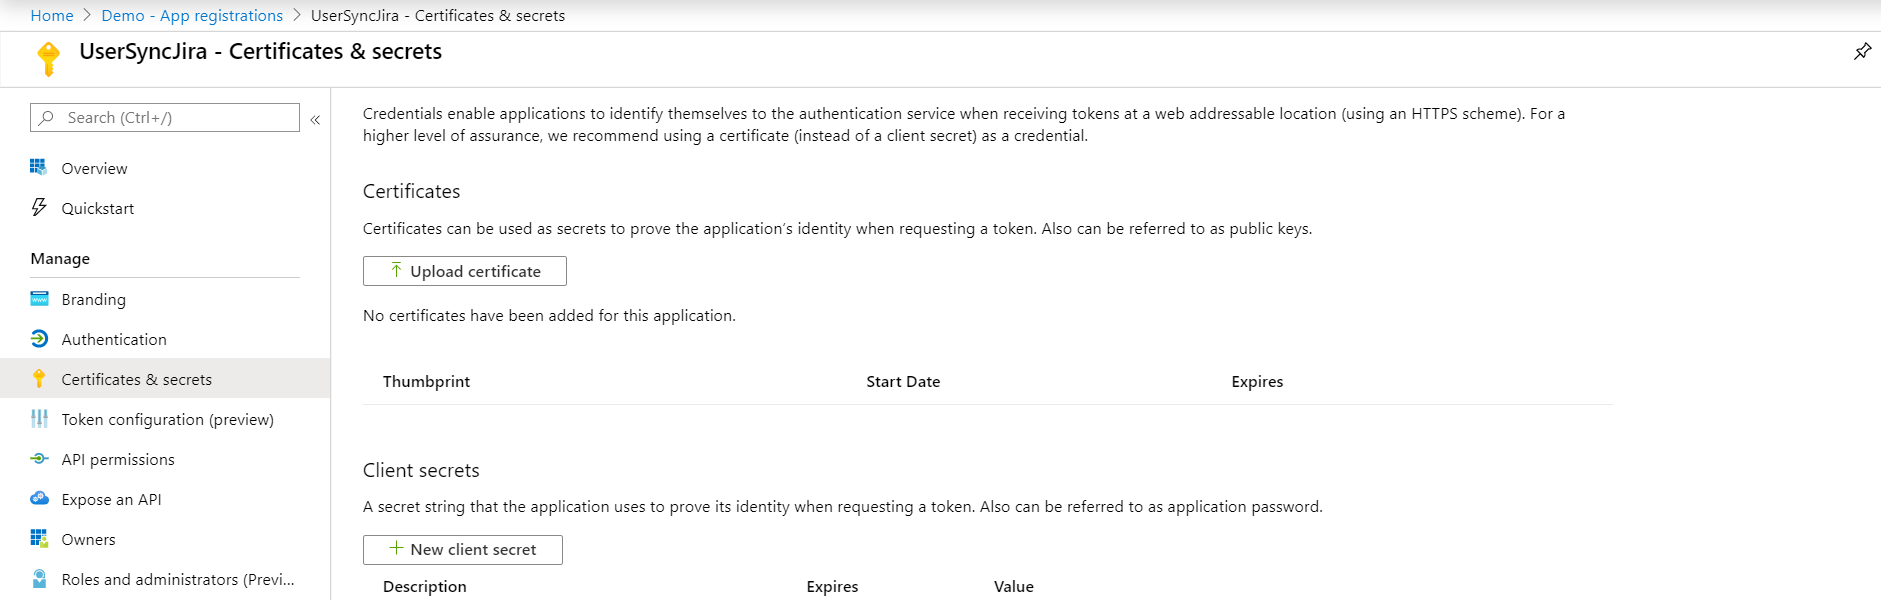 sync users, groups and directory details using Azure AD into Jira and Confluence